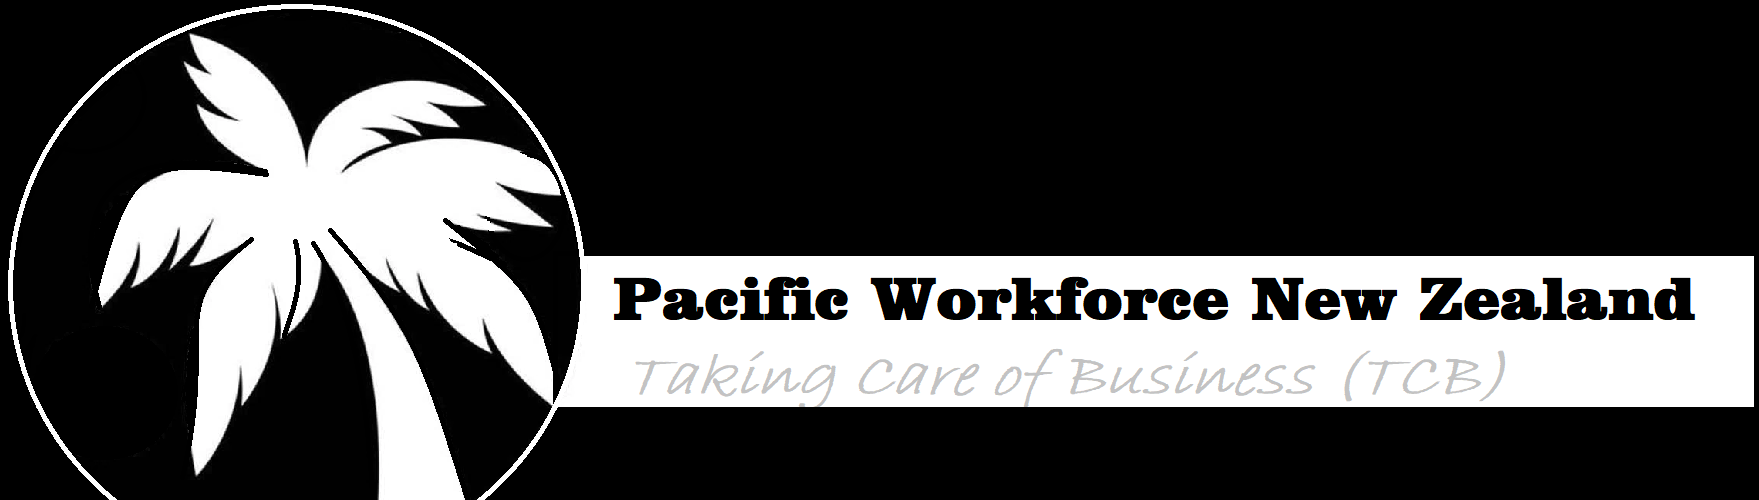 Pacific Workforce NZ